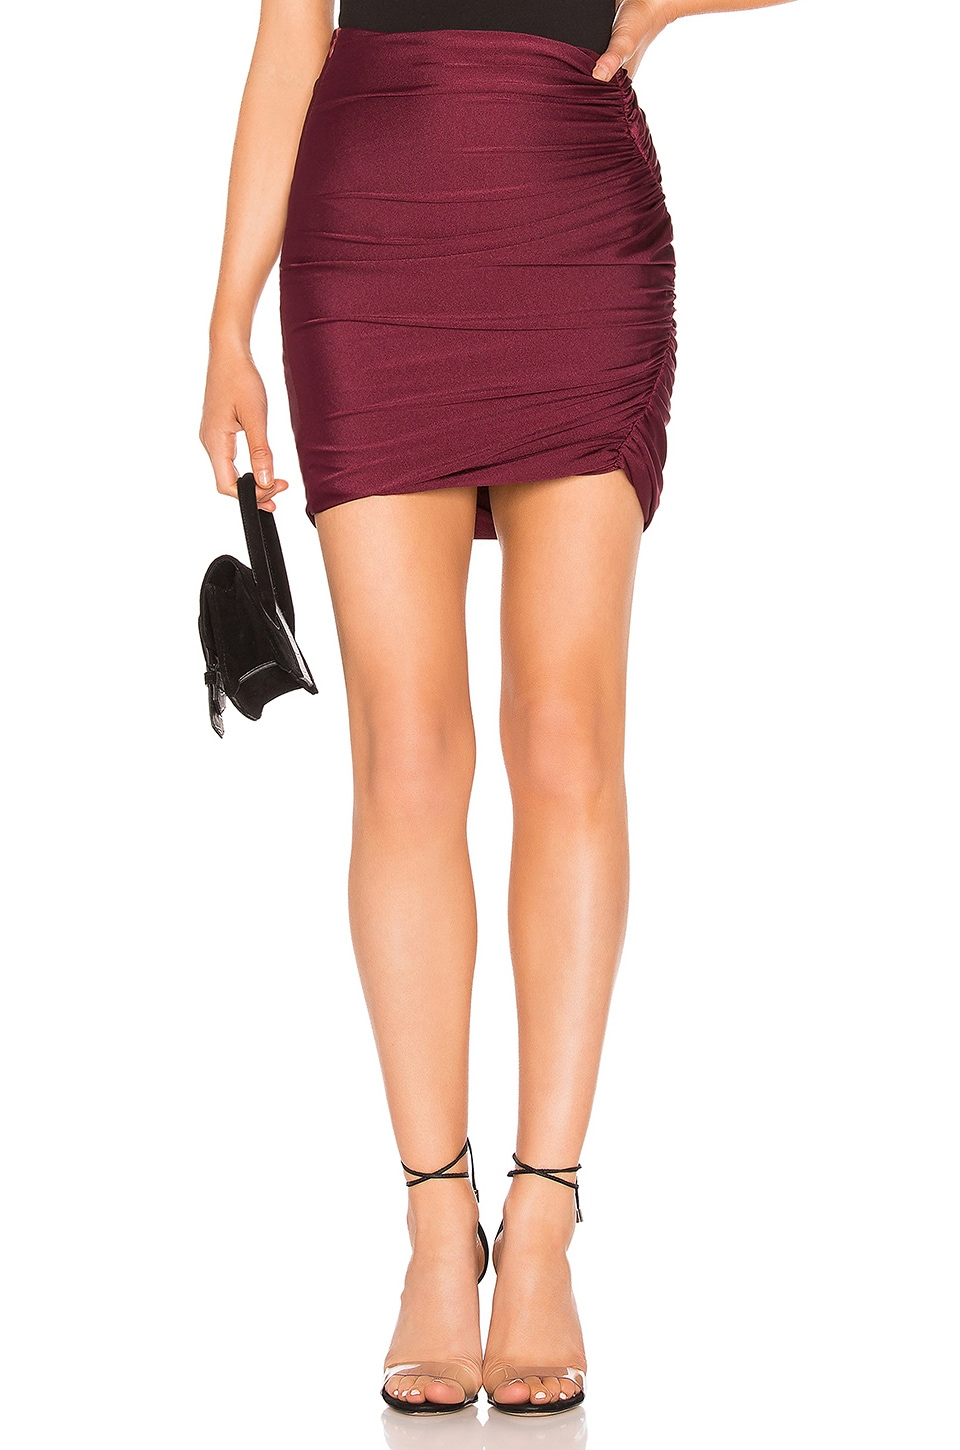 About Us Ava Ruched Mini Skirt in Wine